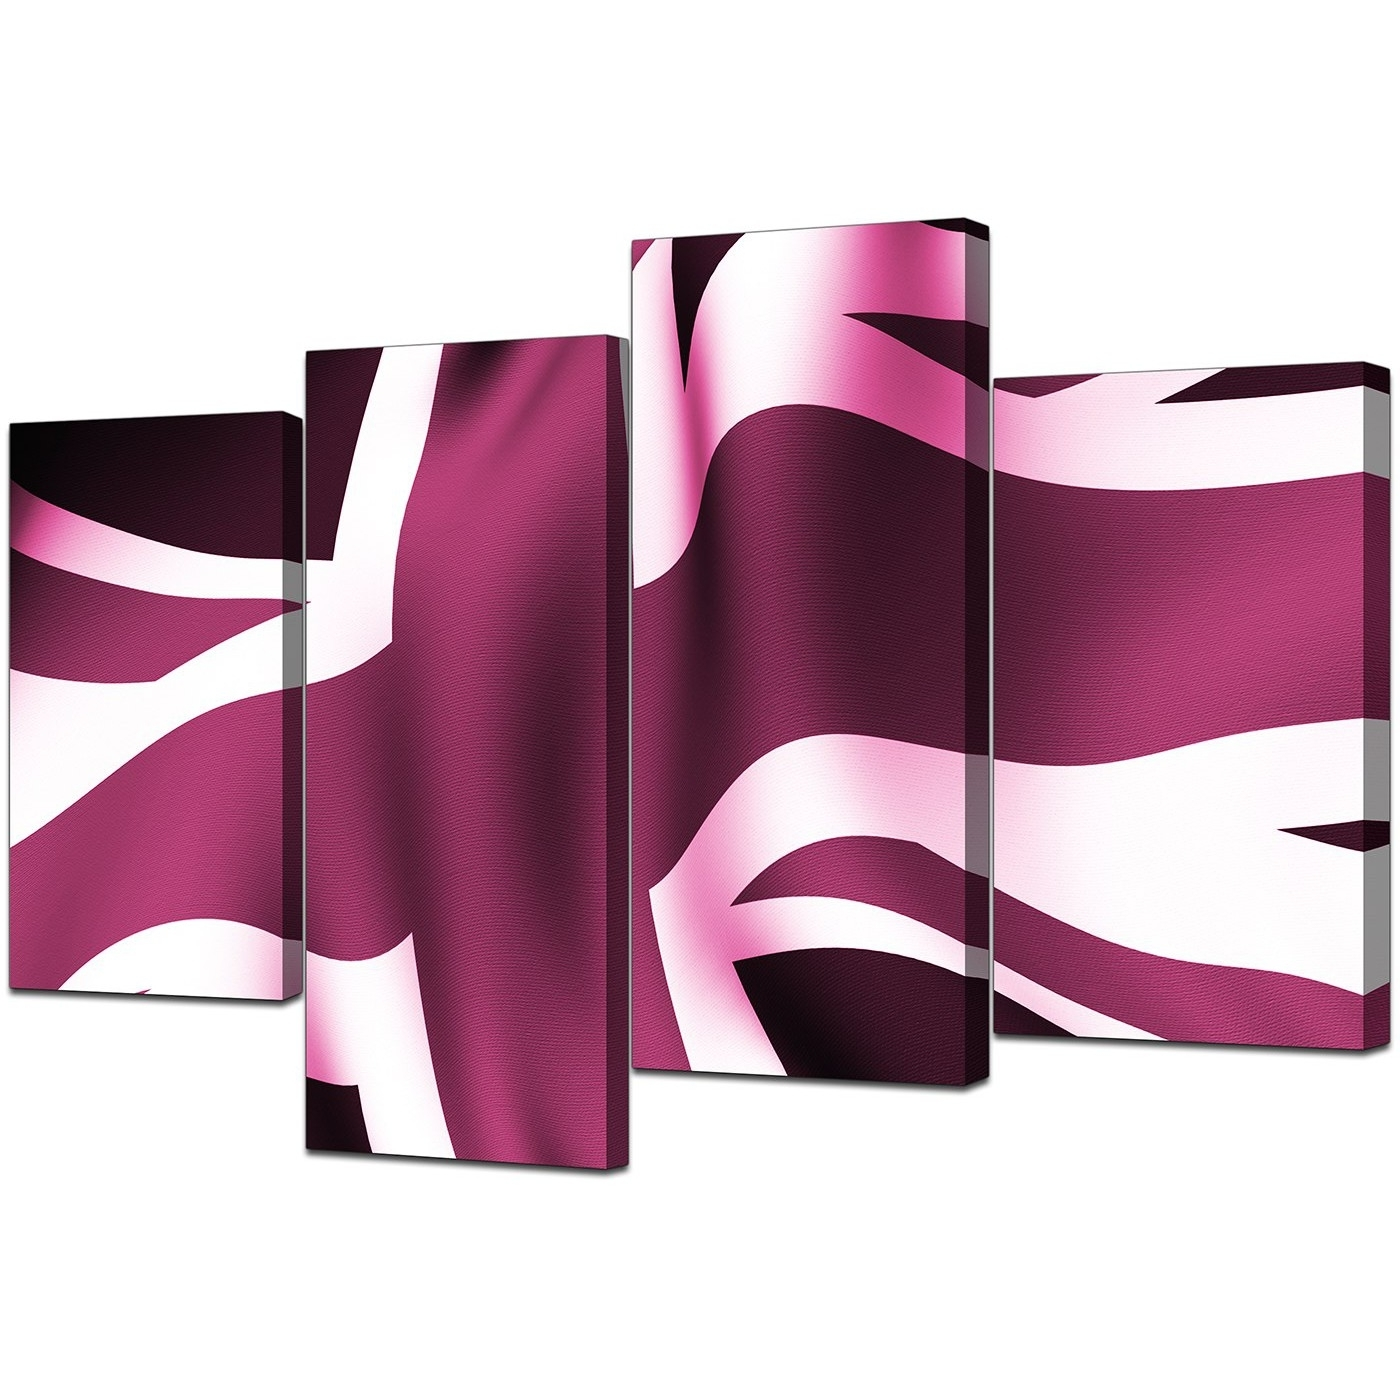 Union Jack Canvas Wall Art Within Recent Modern Union Jack Canvas Prints In Plum – For Bedroom (Gallery 8 of 15)